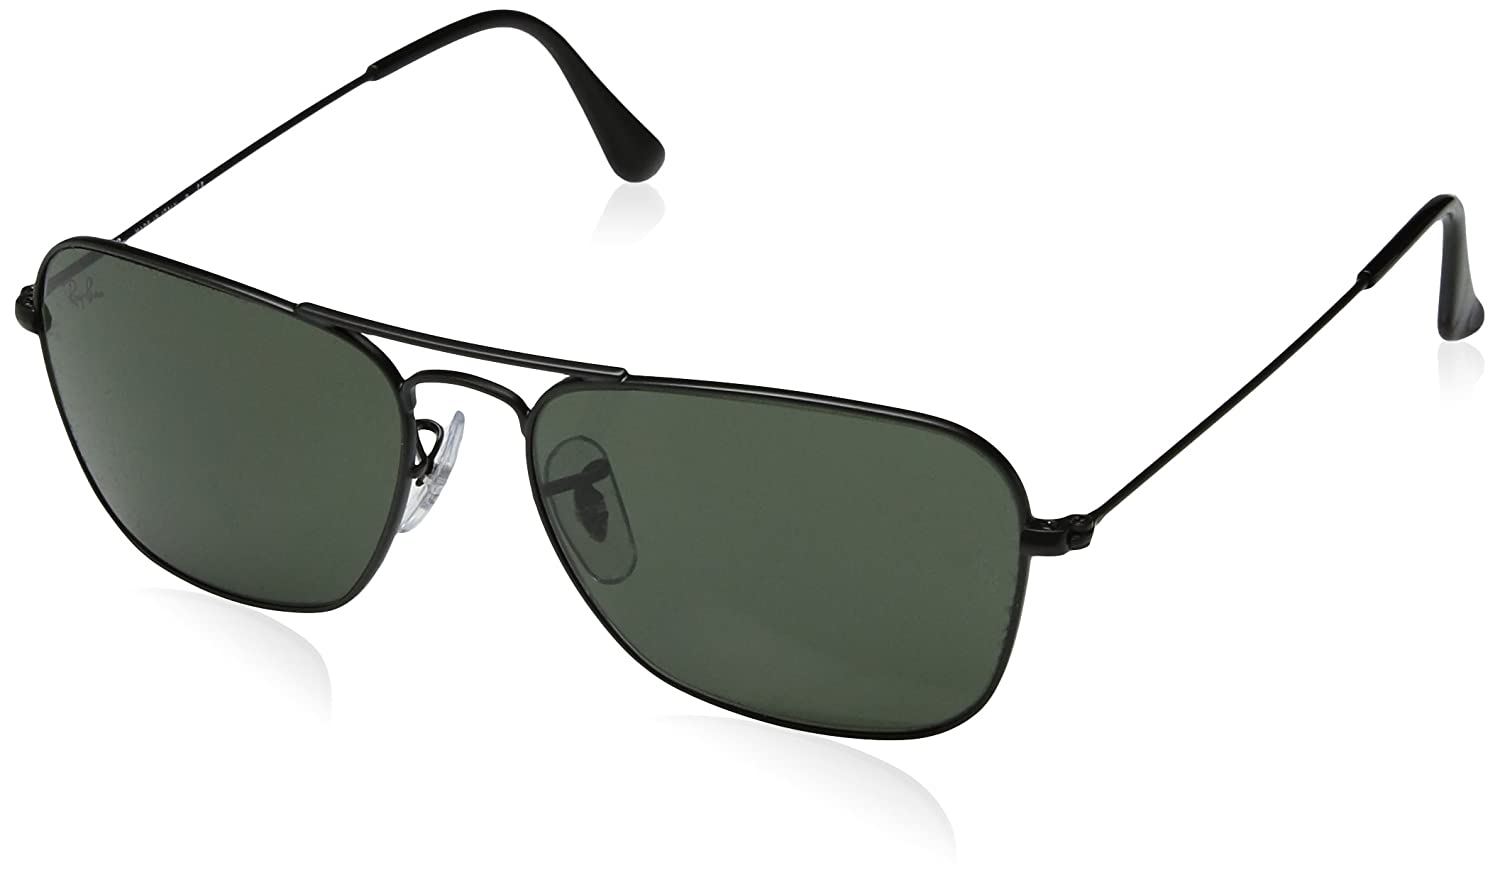 b22d3cc6dd9 Amazon.com  Ray-Ban Men s Caravan Rectangular Sunglasses MATTE BLACK 55 mm   Clothing